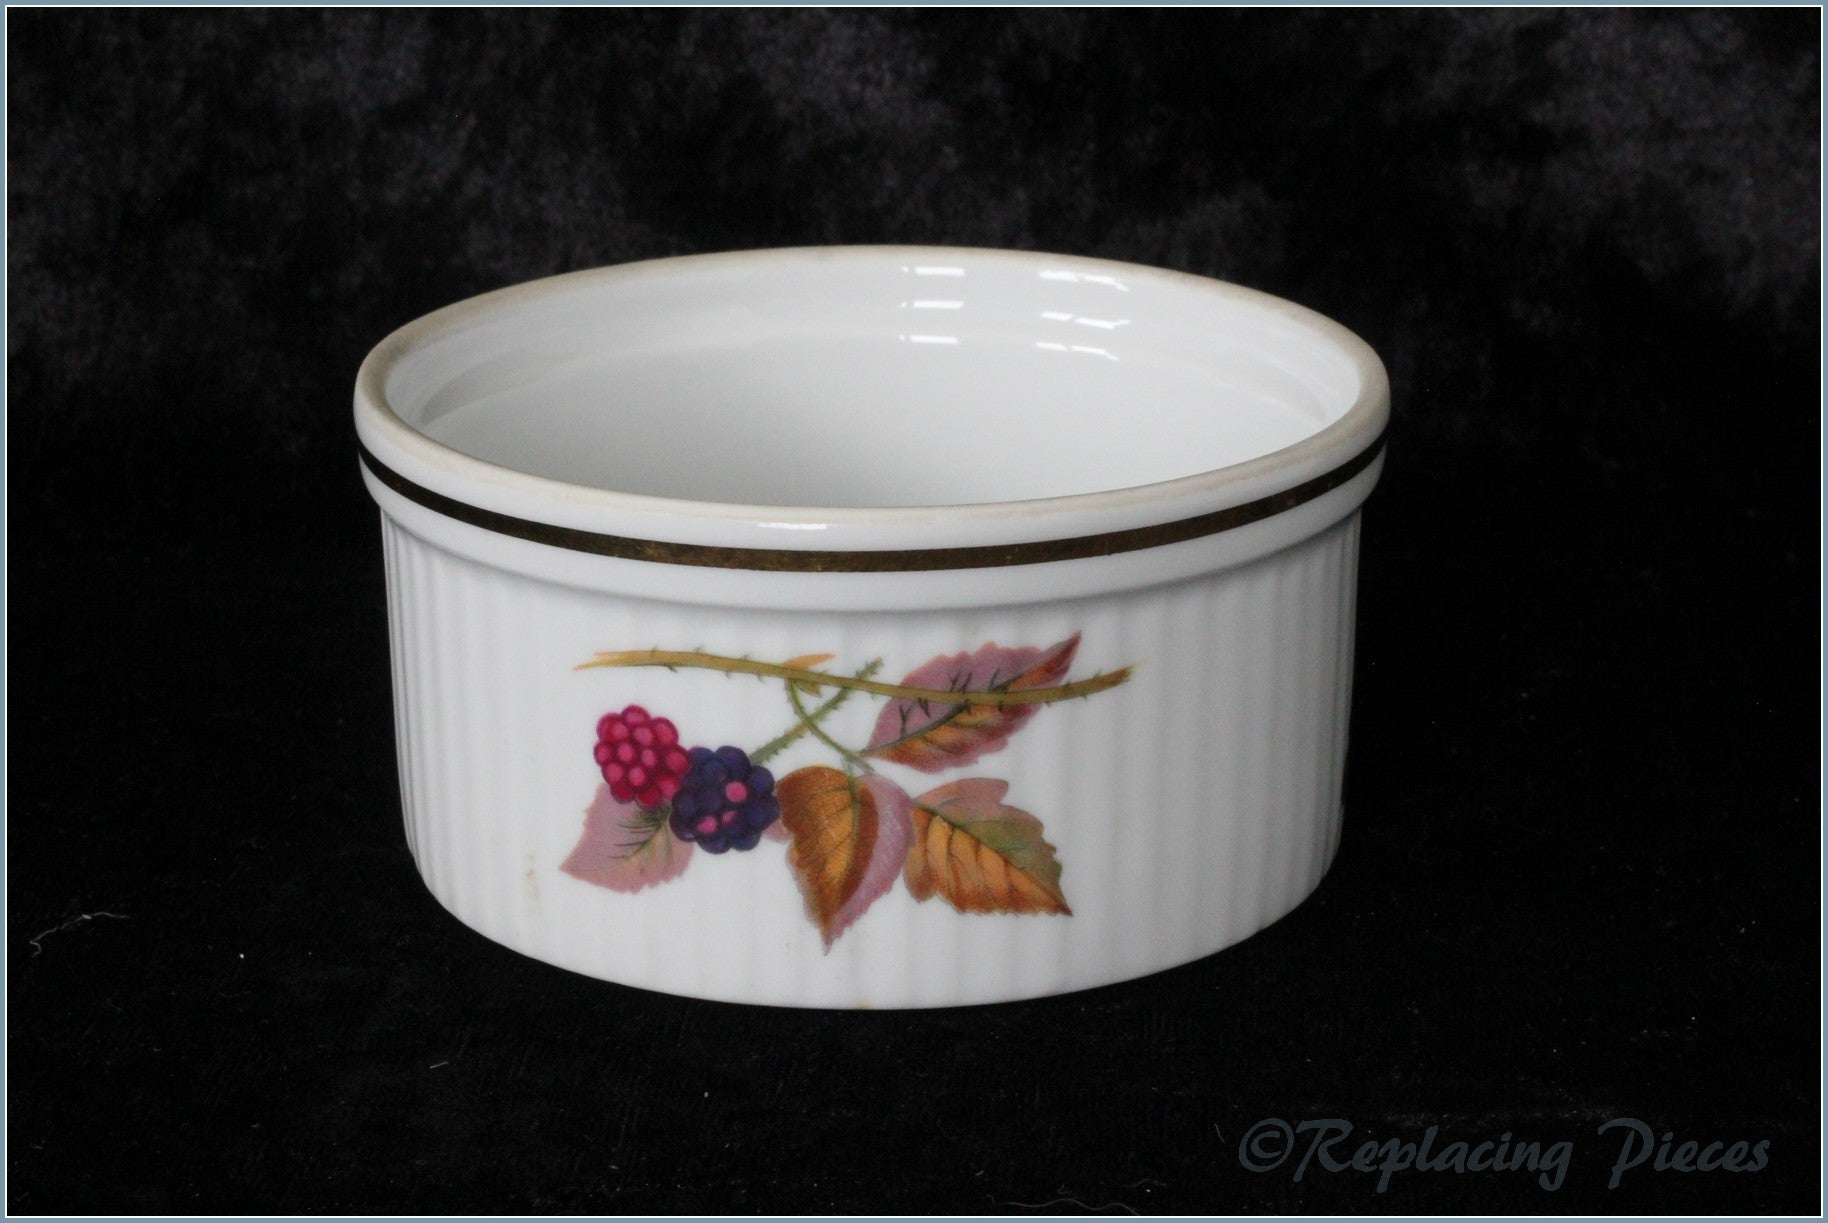 Royal Worcester - Evesham Gold - Ramekin (large)